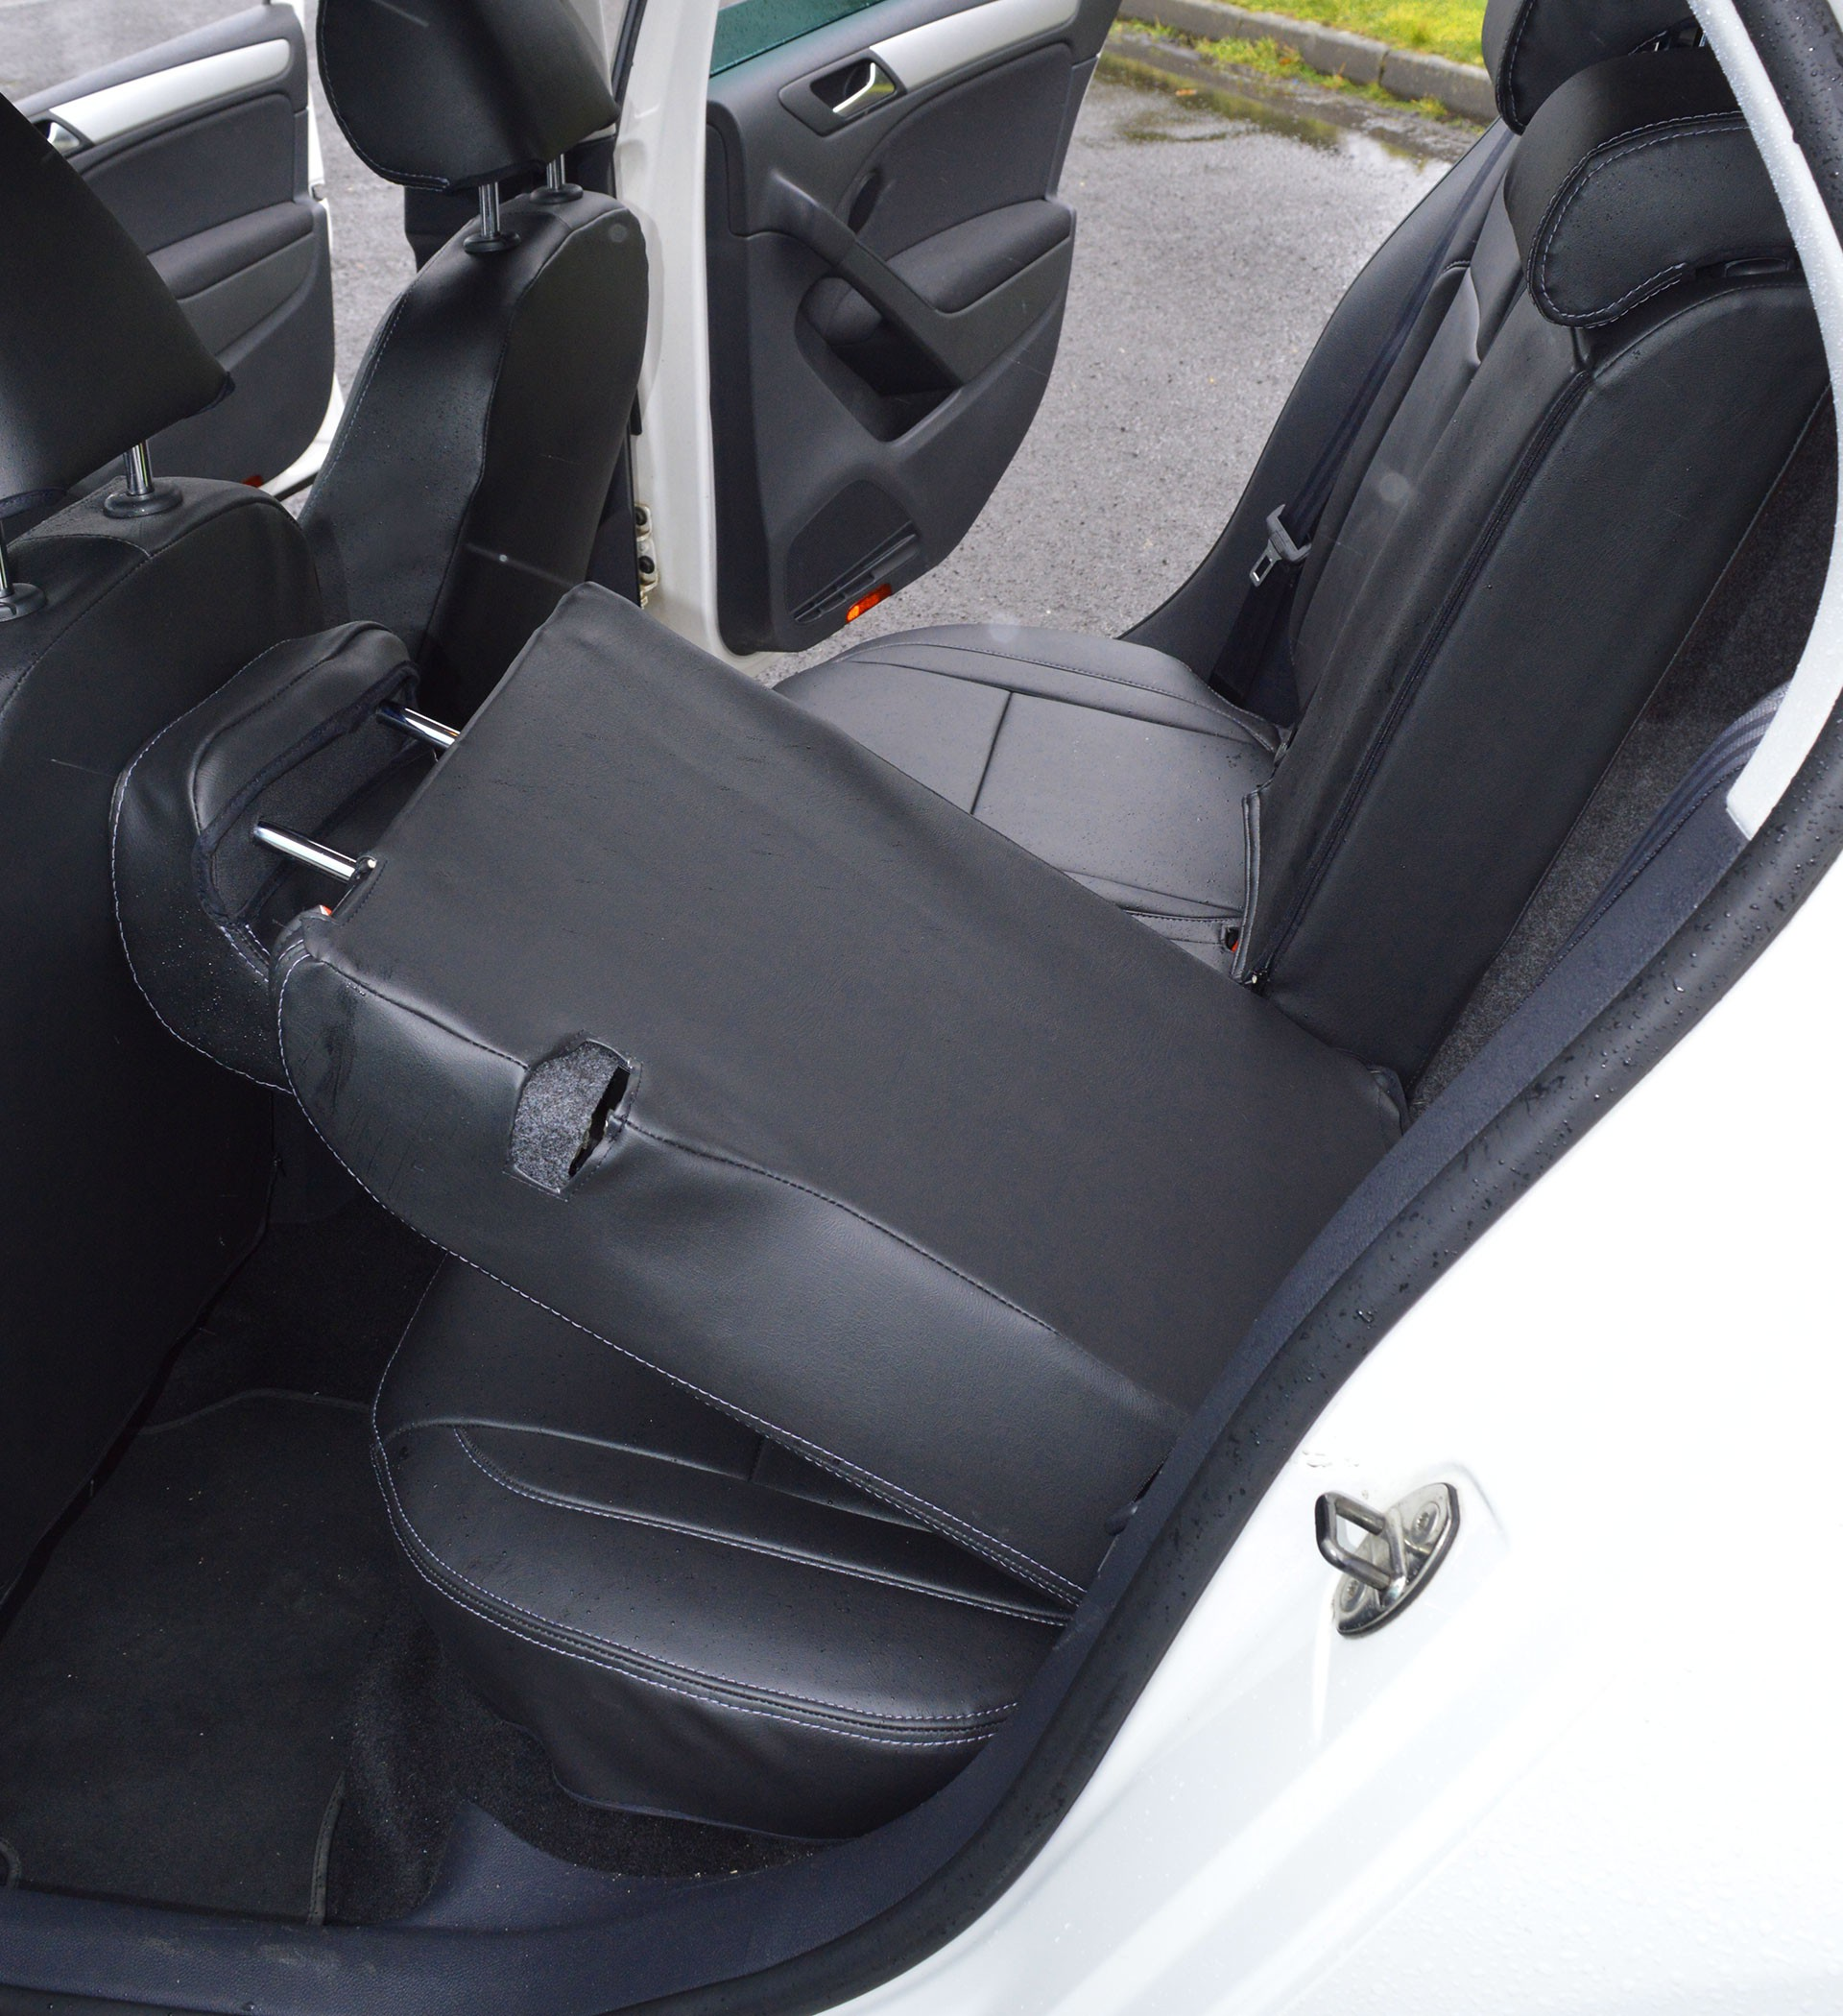 Vw Golf Mk6 Tailored Car Seat Covers 2008 2013